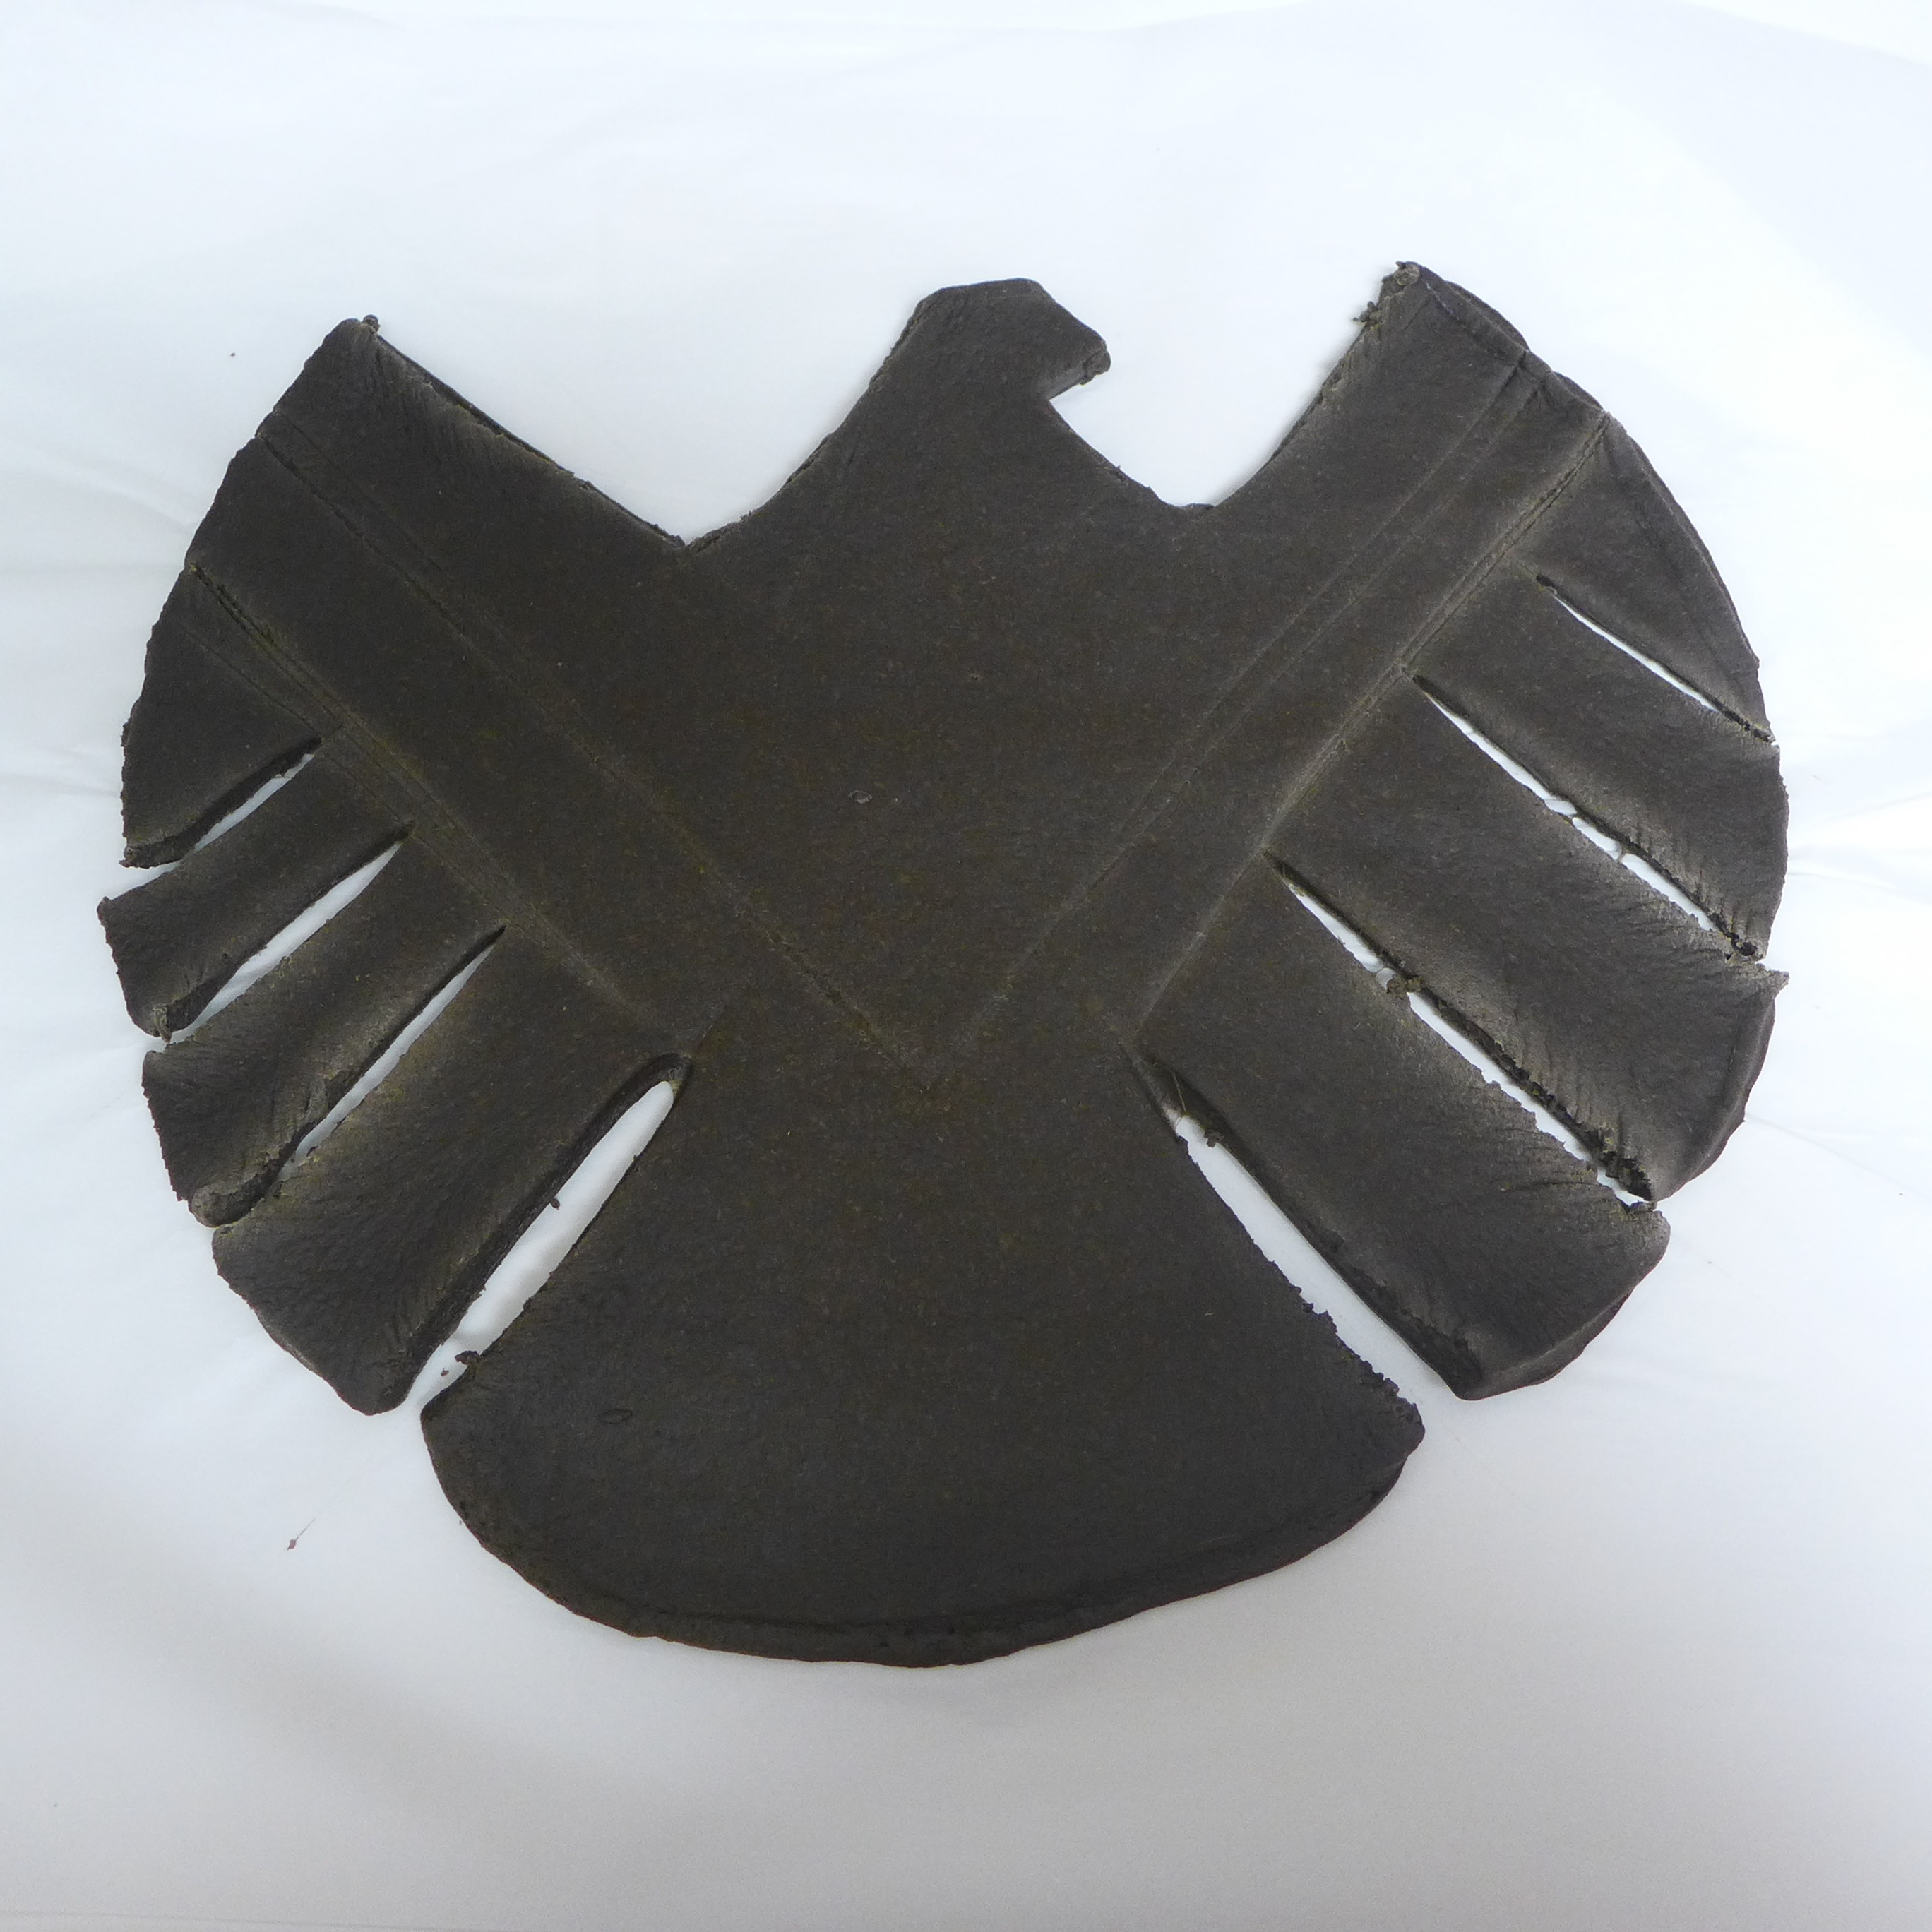 Kitchen Overlord - SHIELD Logo Pull Apart Bread Assembly Instructions